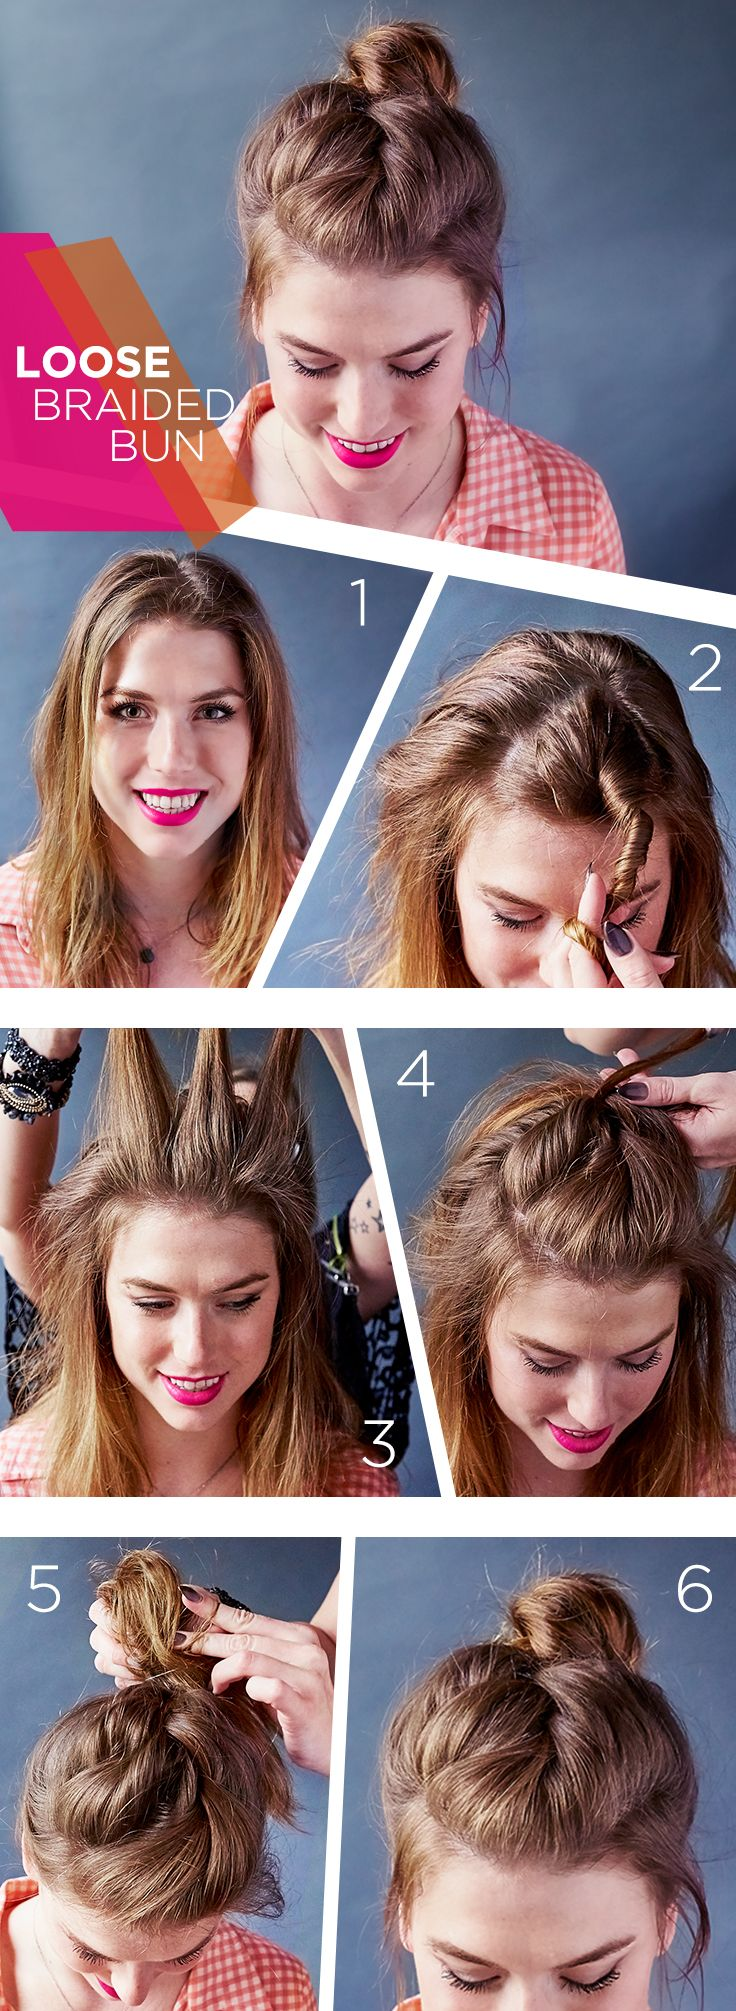 Here's a new take on the messy bun. Get this Loose Braided Bun tutorial in just 6 easy steps.